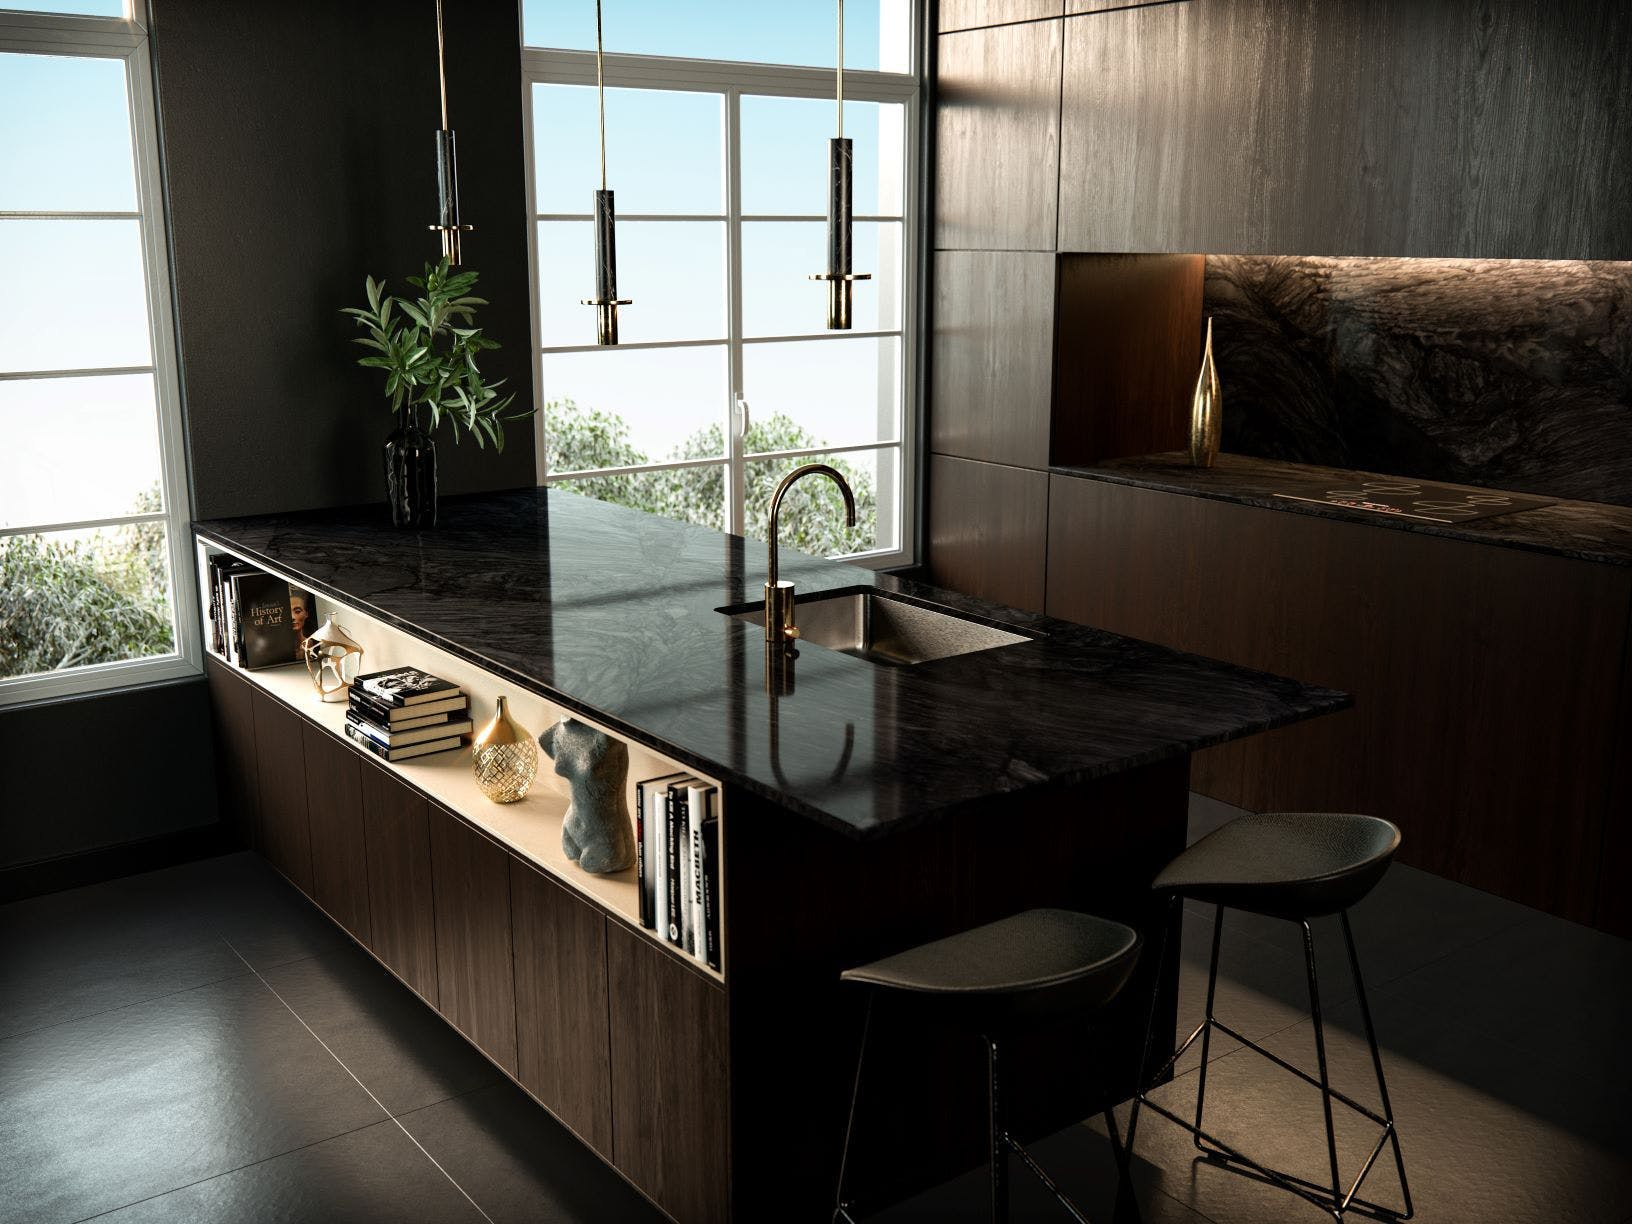 Sensa by Cosentino Nilo Kitchen countertops and backsplash 1 1 | Cosentino